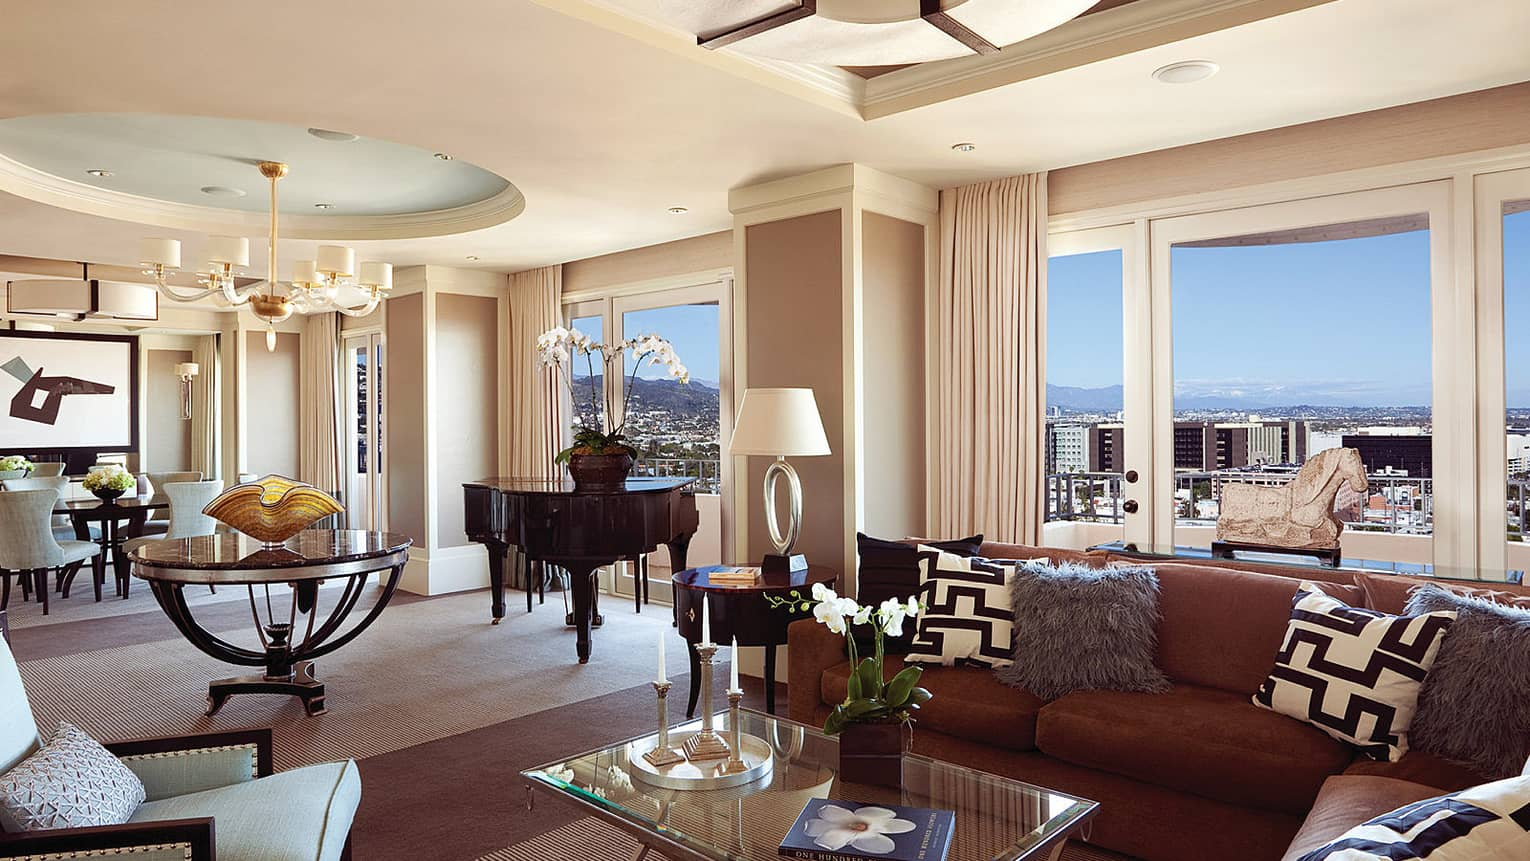 Presidential Suite East large living, dining room under soaring ceiling, picture windows with views of city, hills